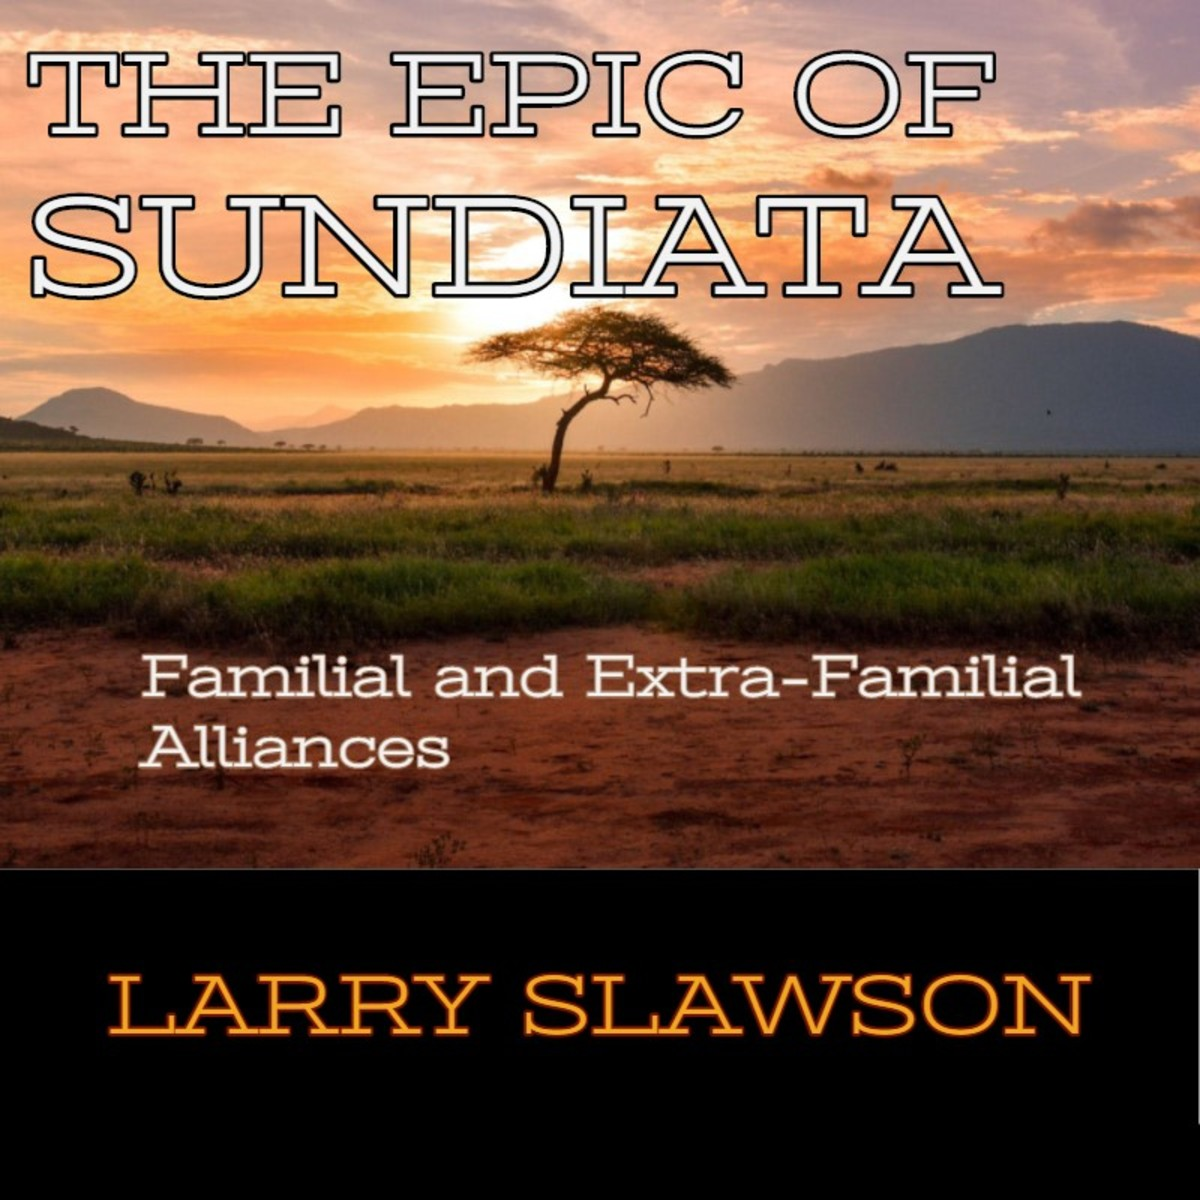 The Epic of Sundiata